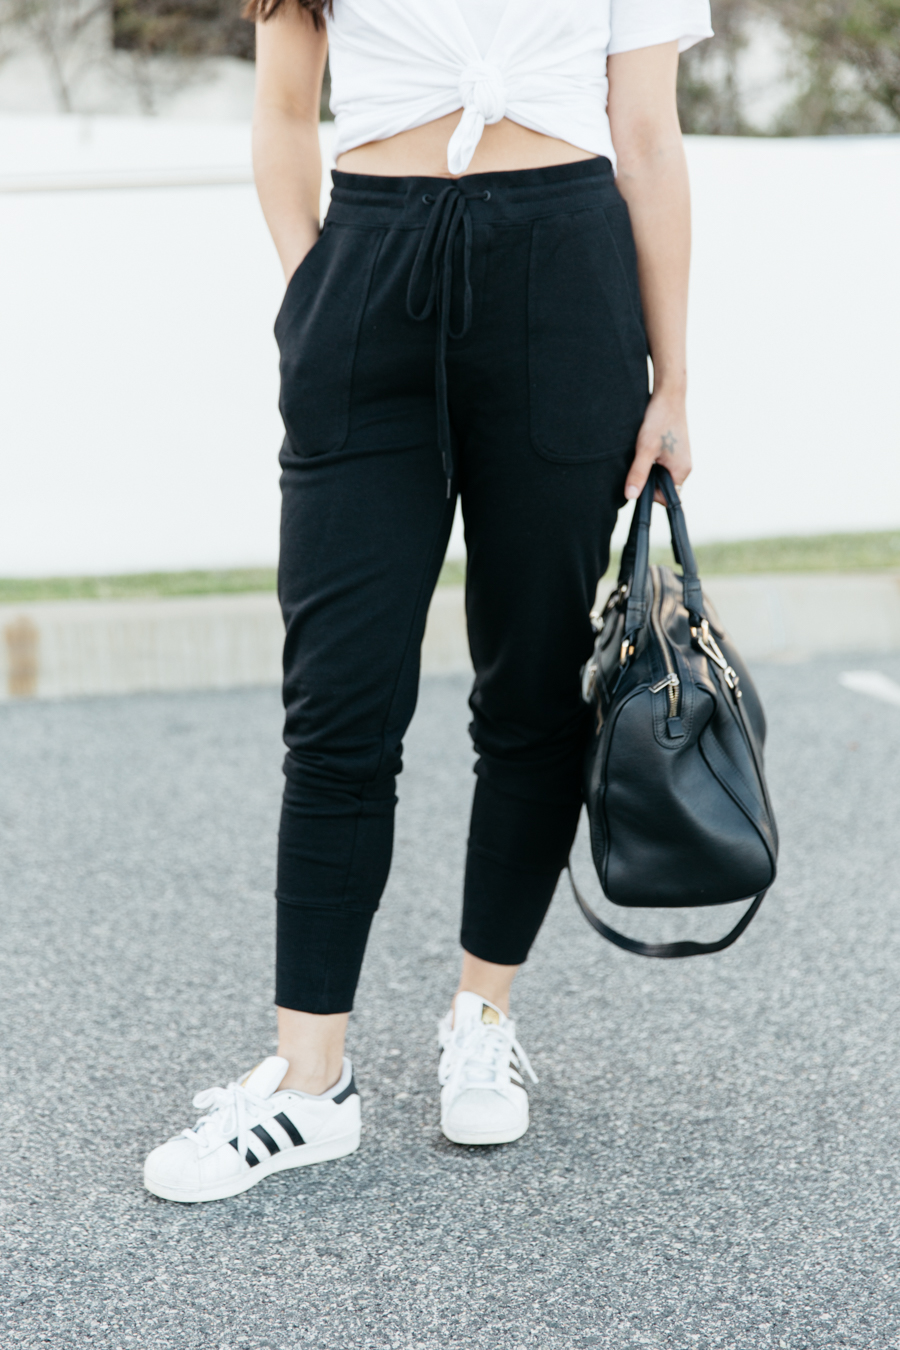 Casual weekend outfit look with sweat pants.